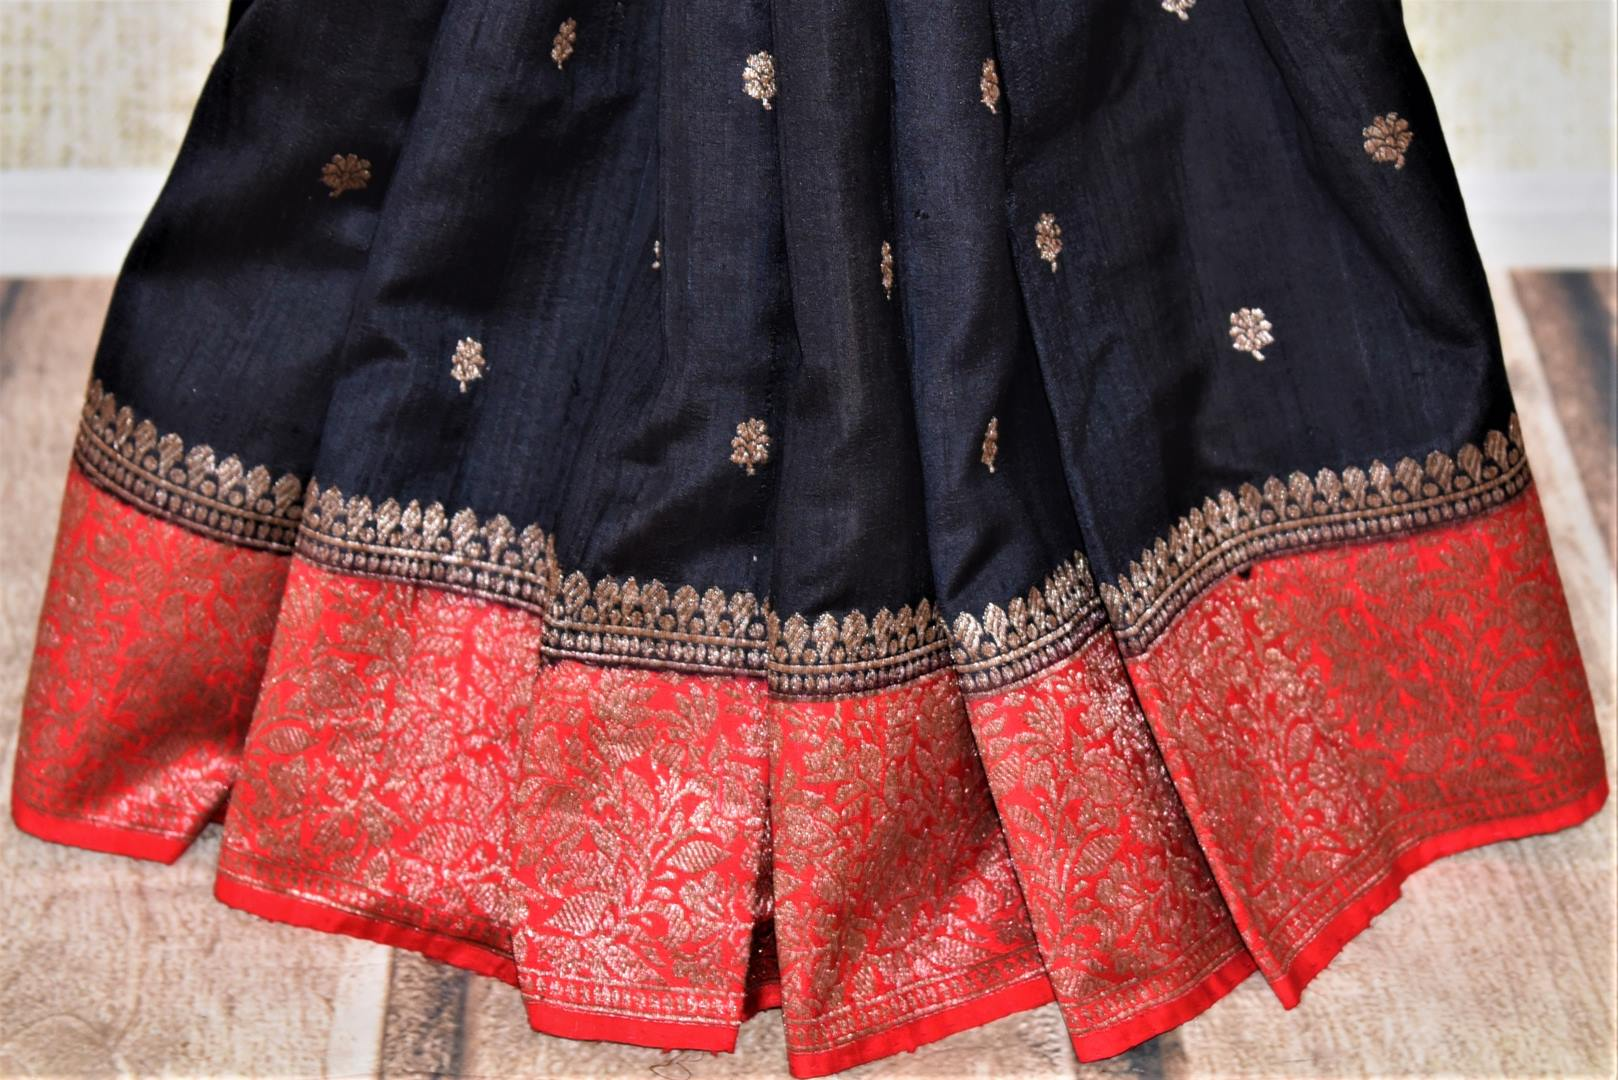 Buy black tussar Banarasi sari online in USA with zari buta and red zari border. Choose tasteful handloom saris for special occasions from Pure Elegance. Our exclusive Indian fashion store has a myriad of exquisite pure silk saris, tussar sarees, Banarasi sarees for Indian women in USA.-pleats